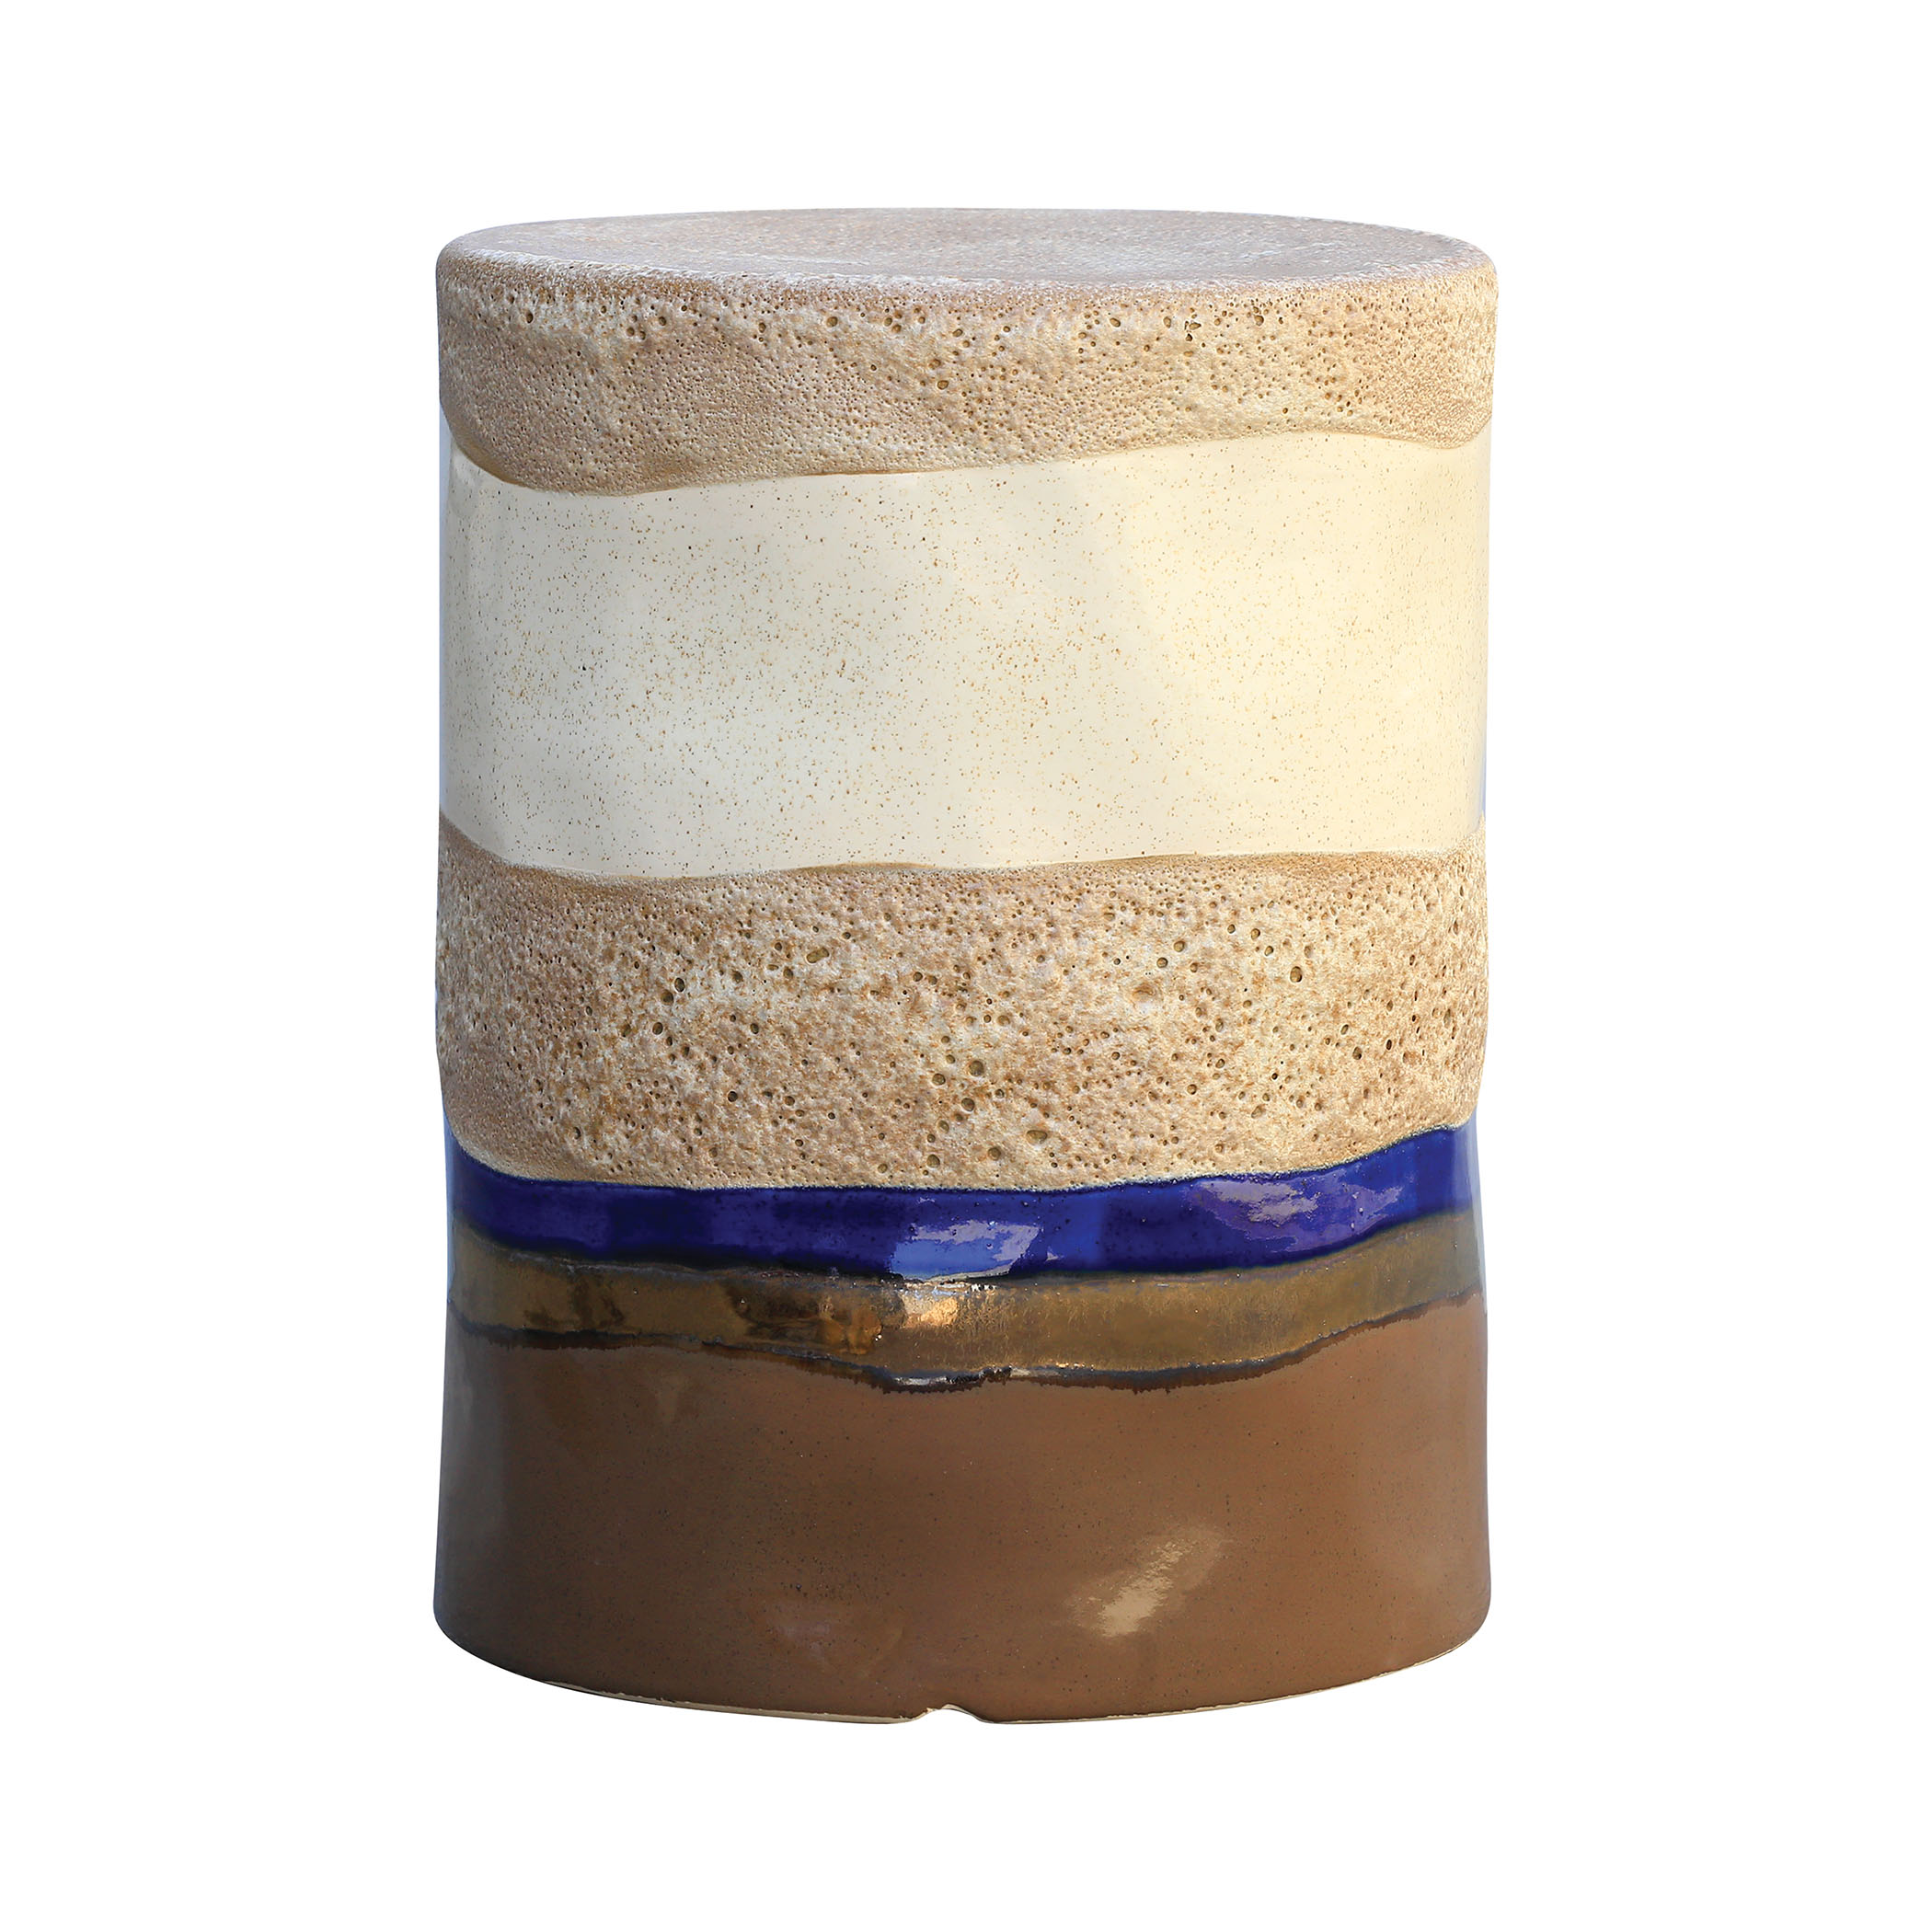 Mangan Stool in Oatmeal, Canon Browns, and Navy | Elk Home